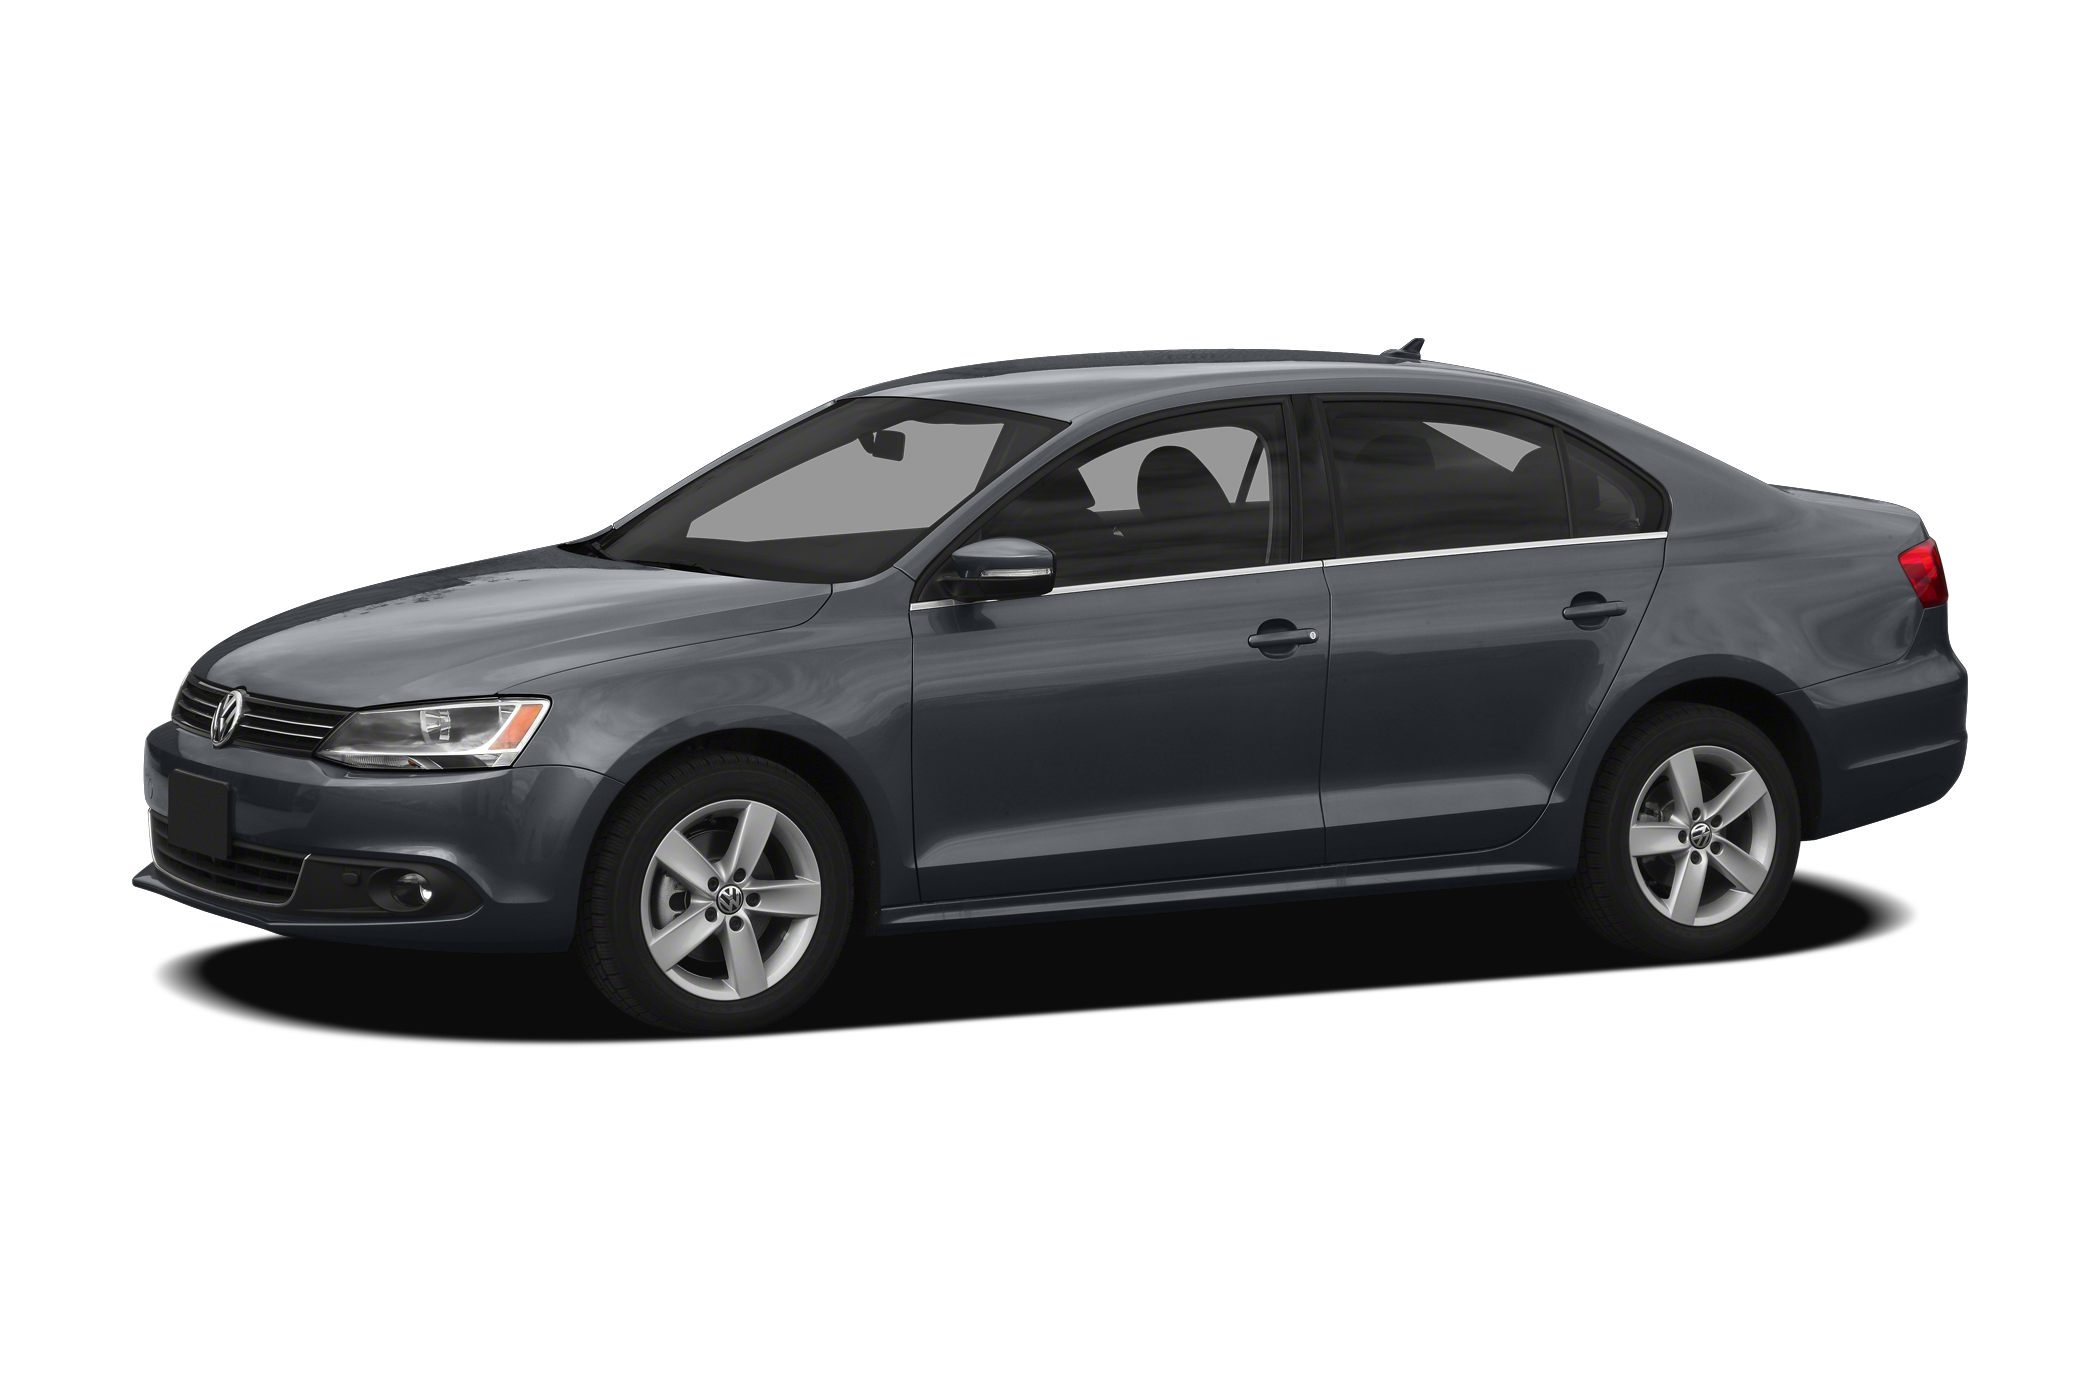 2011 Volkswagen Jetta 25 SE Look Look Look You Win People from Palm Springs Lake Elsinore S